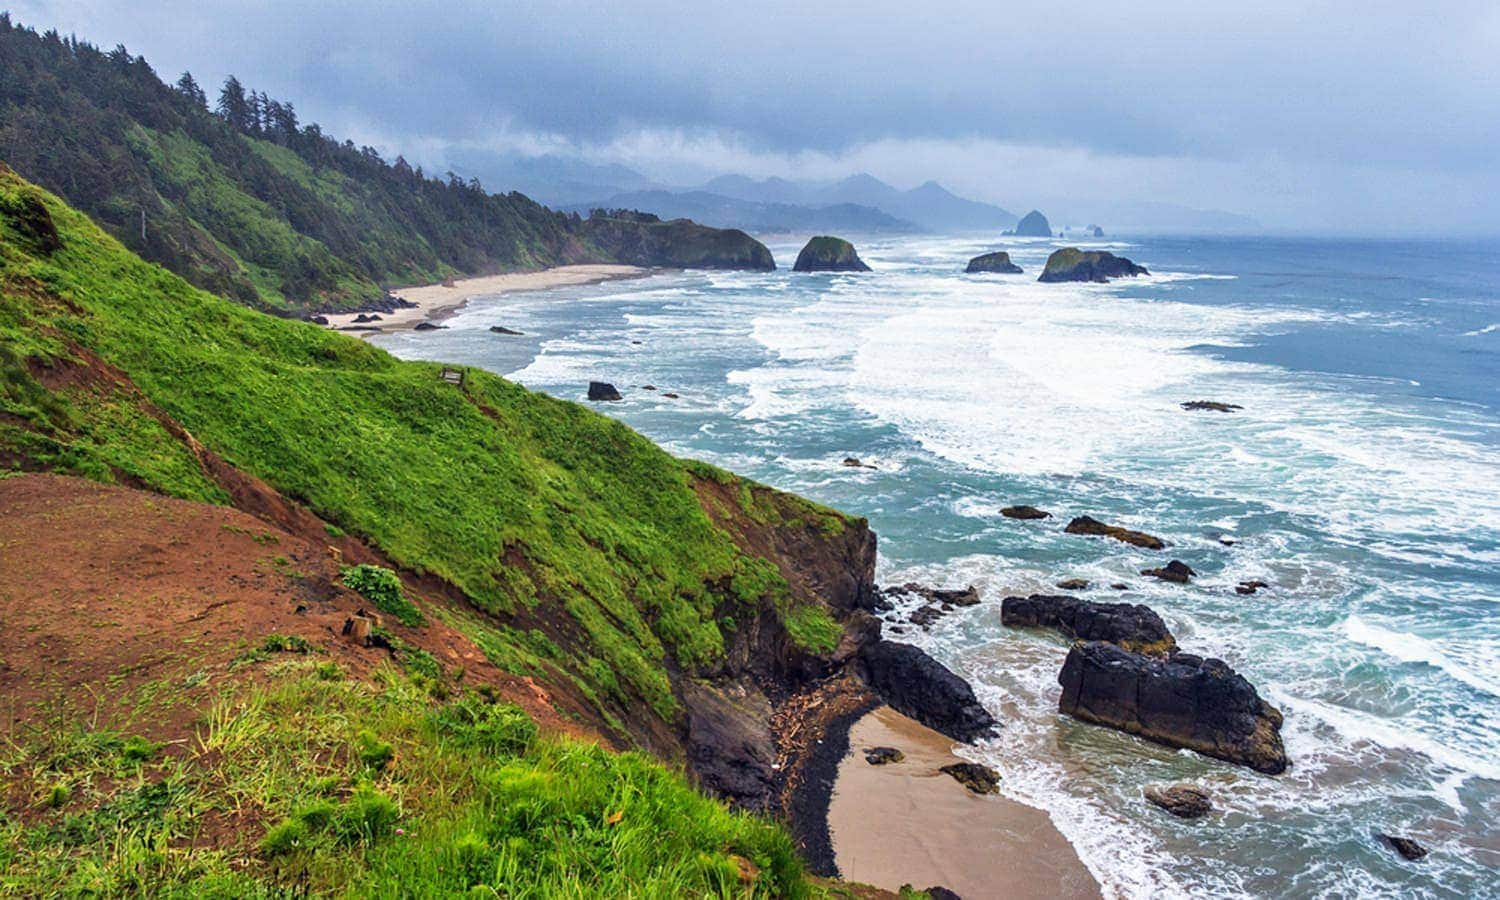 The view from an Oregon Coast headland reveals tree-lined hills along blue waters.